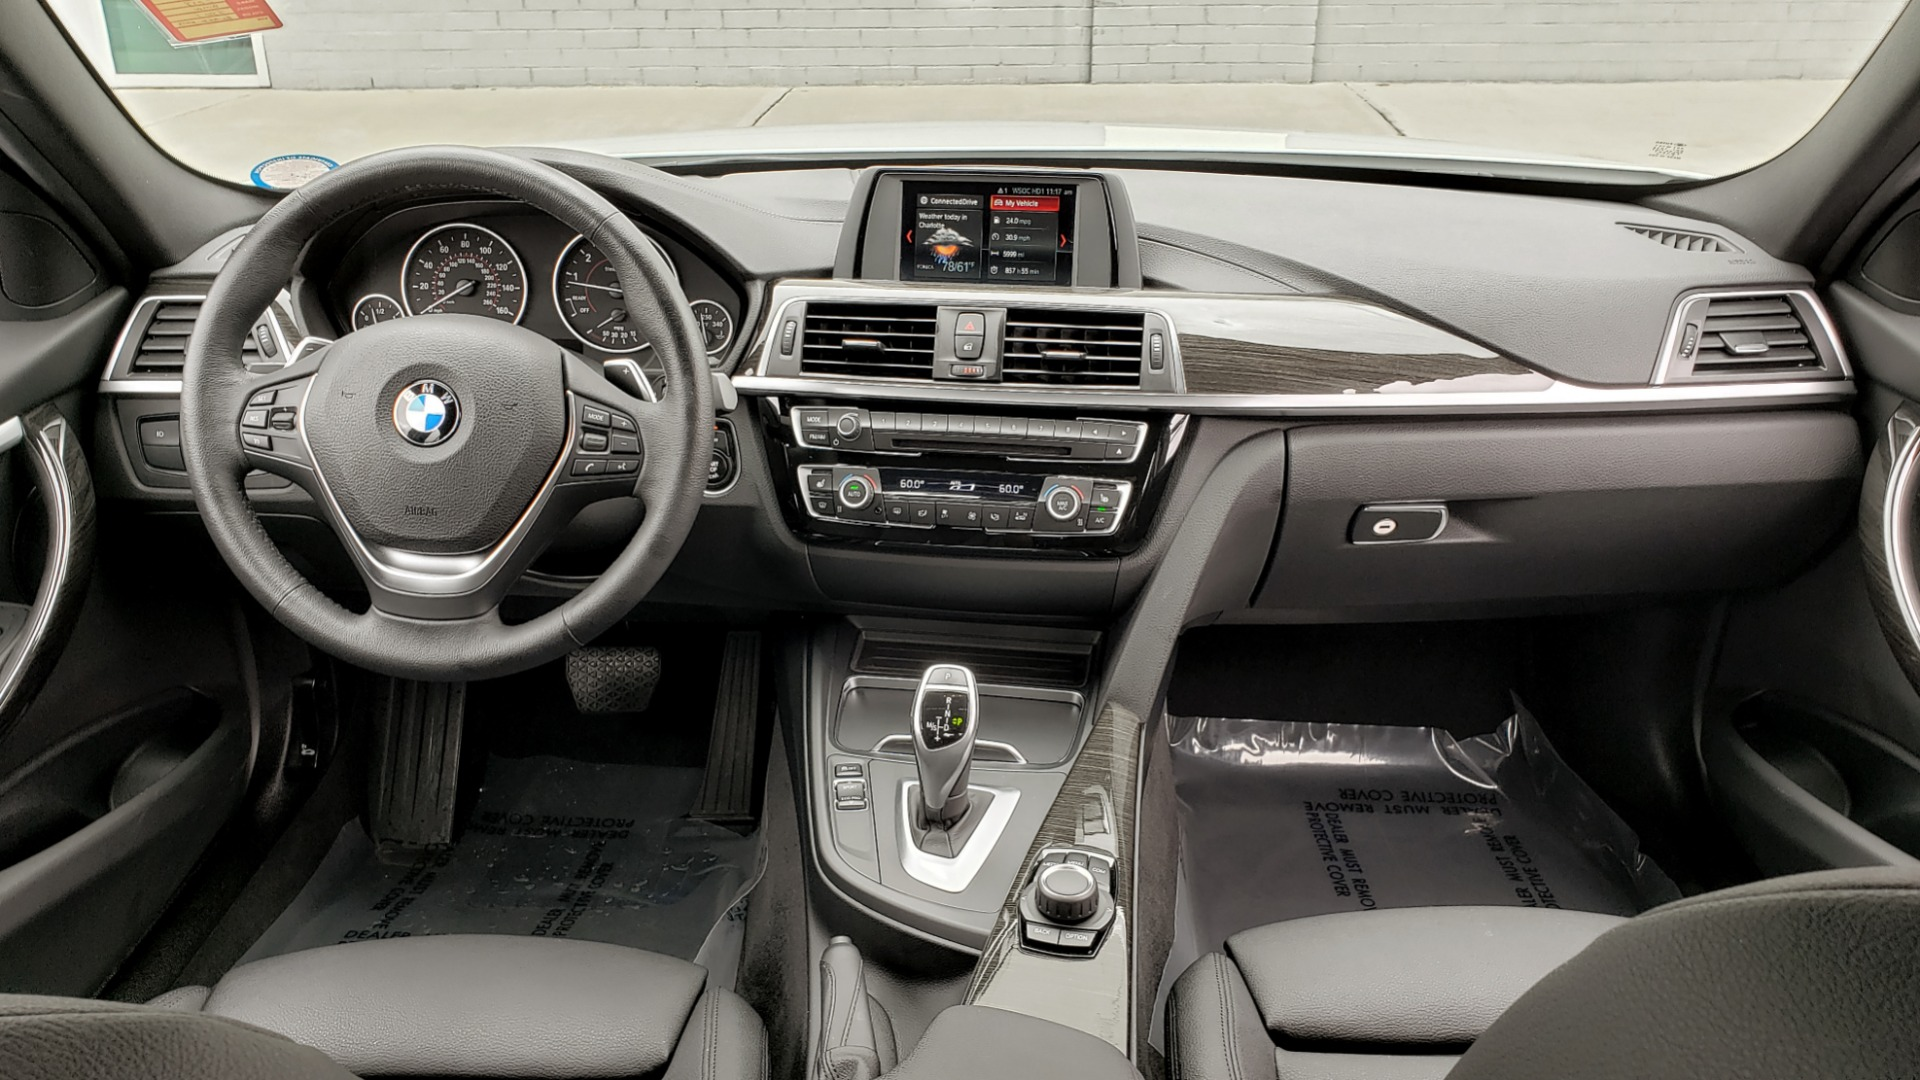 Used 2018 BMW 3 SERIES 330I XDRIVE / CONV PKG / SUNROOF / HTD STS / REARVIEW for sale $24,795 at Formula Imports in Charlotte NC 28227 79